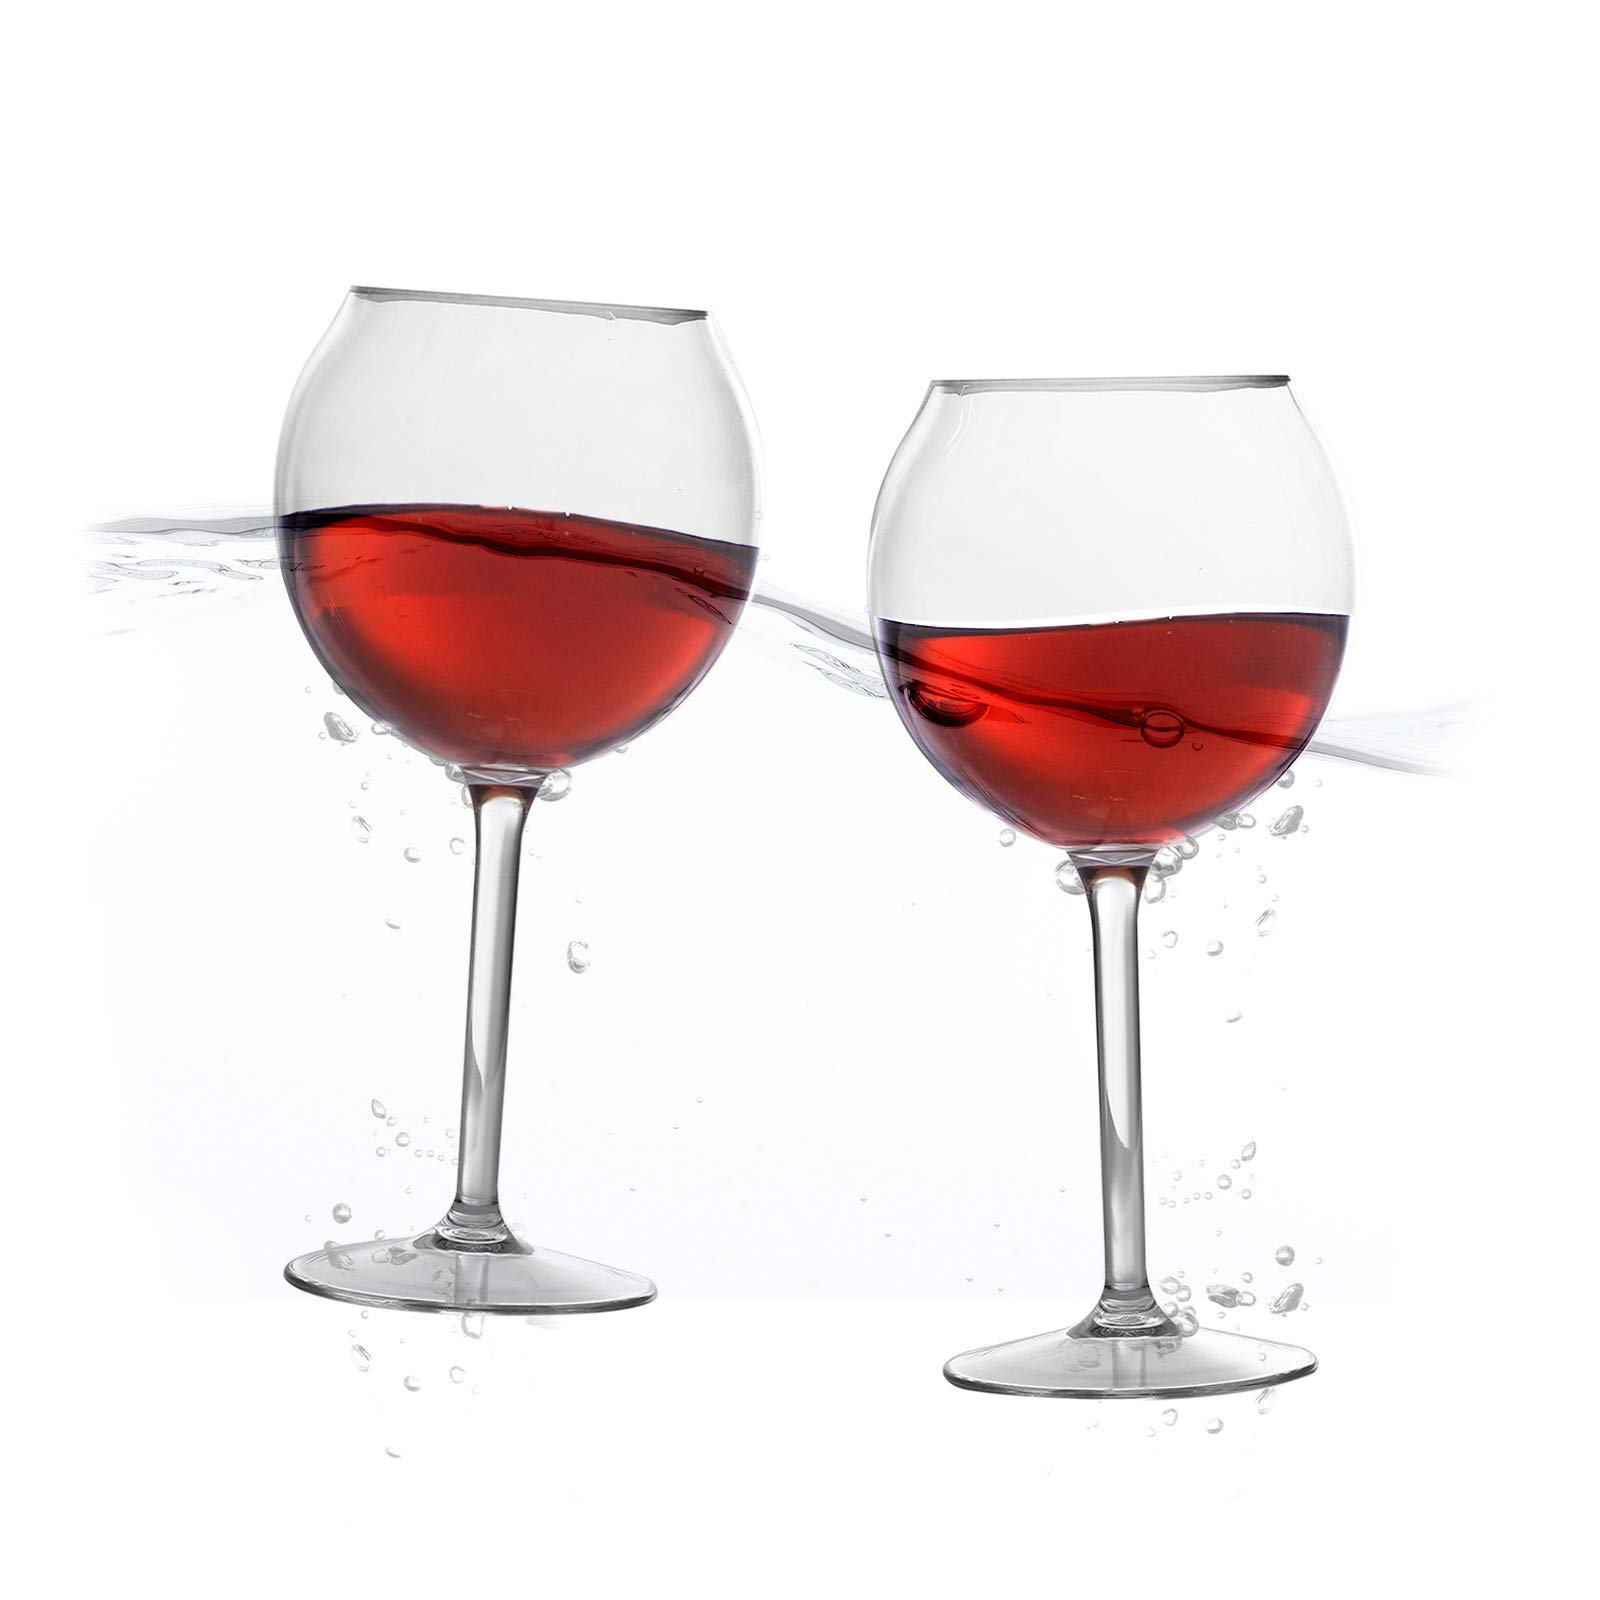 Floating Wine Glasses for Pool (18 Oz | Set of 2) - Pool Wine Glasses That Float | Shatterproof Poolside Wine Glasses | Beach Glass | Outdoor Tritan Plastic Wine Glasses with Stem for Patio, Picnic